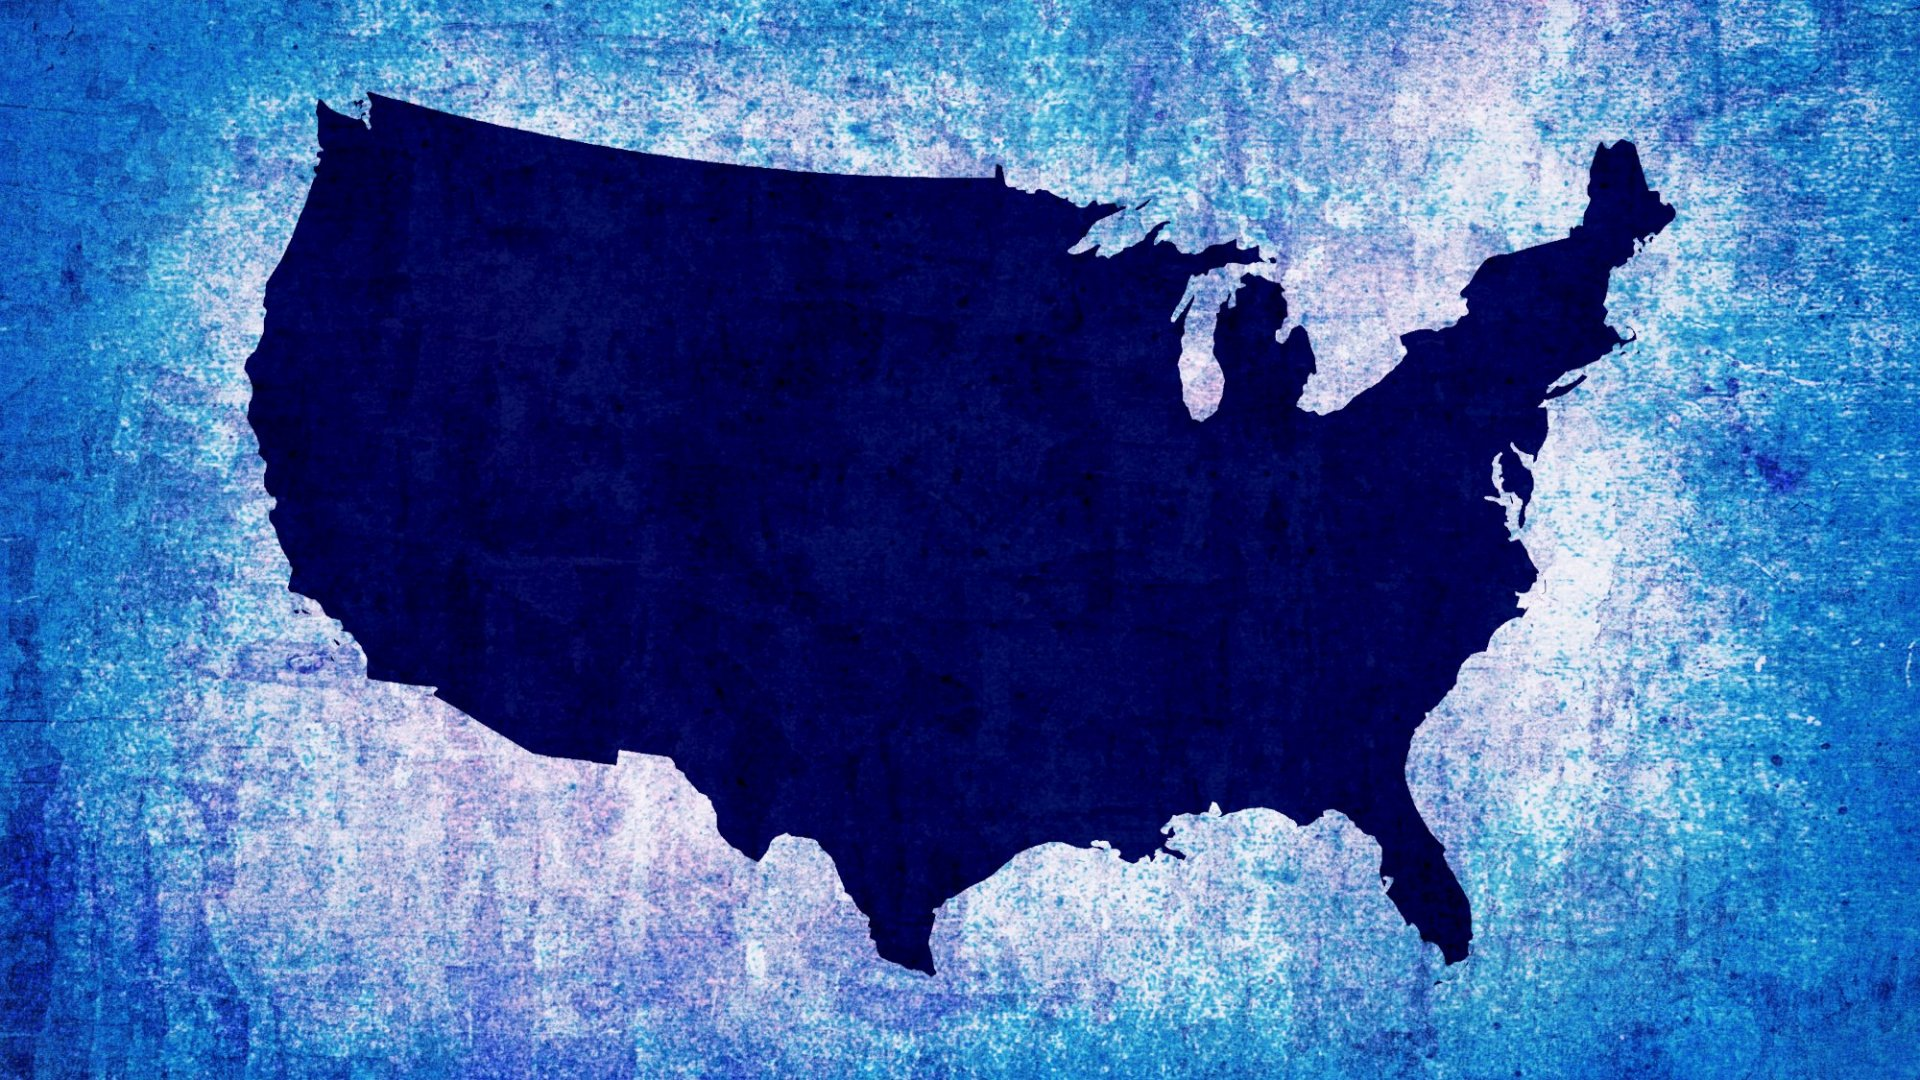 The CDC Just Ranked Every U.S. State by How Much People Exercise. (And Things Ain't Pretty Down South)